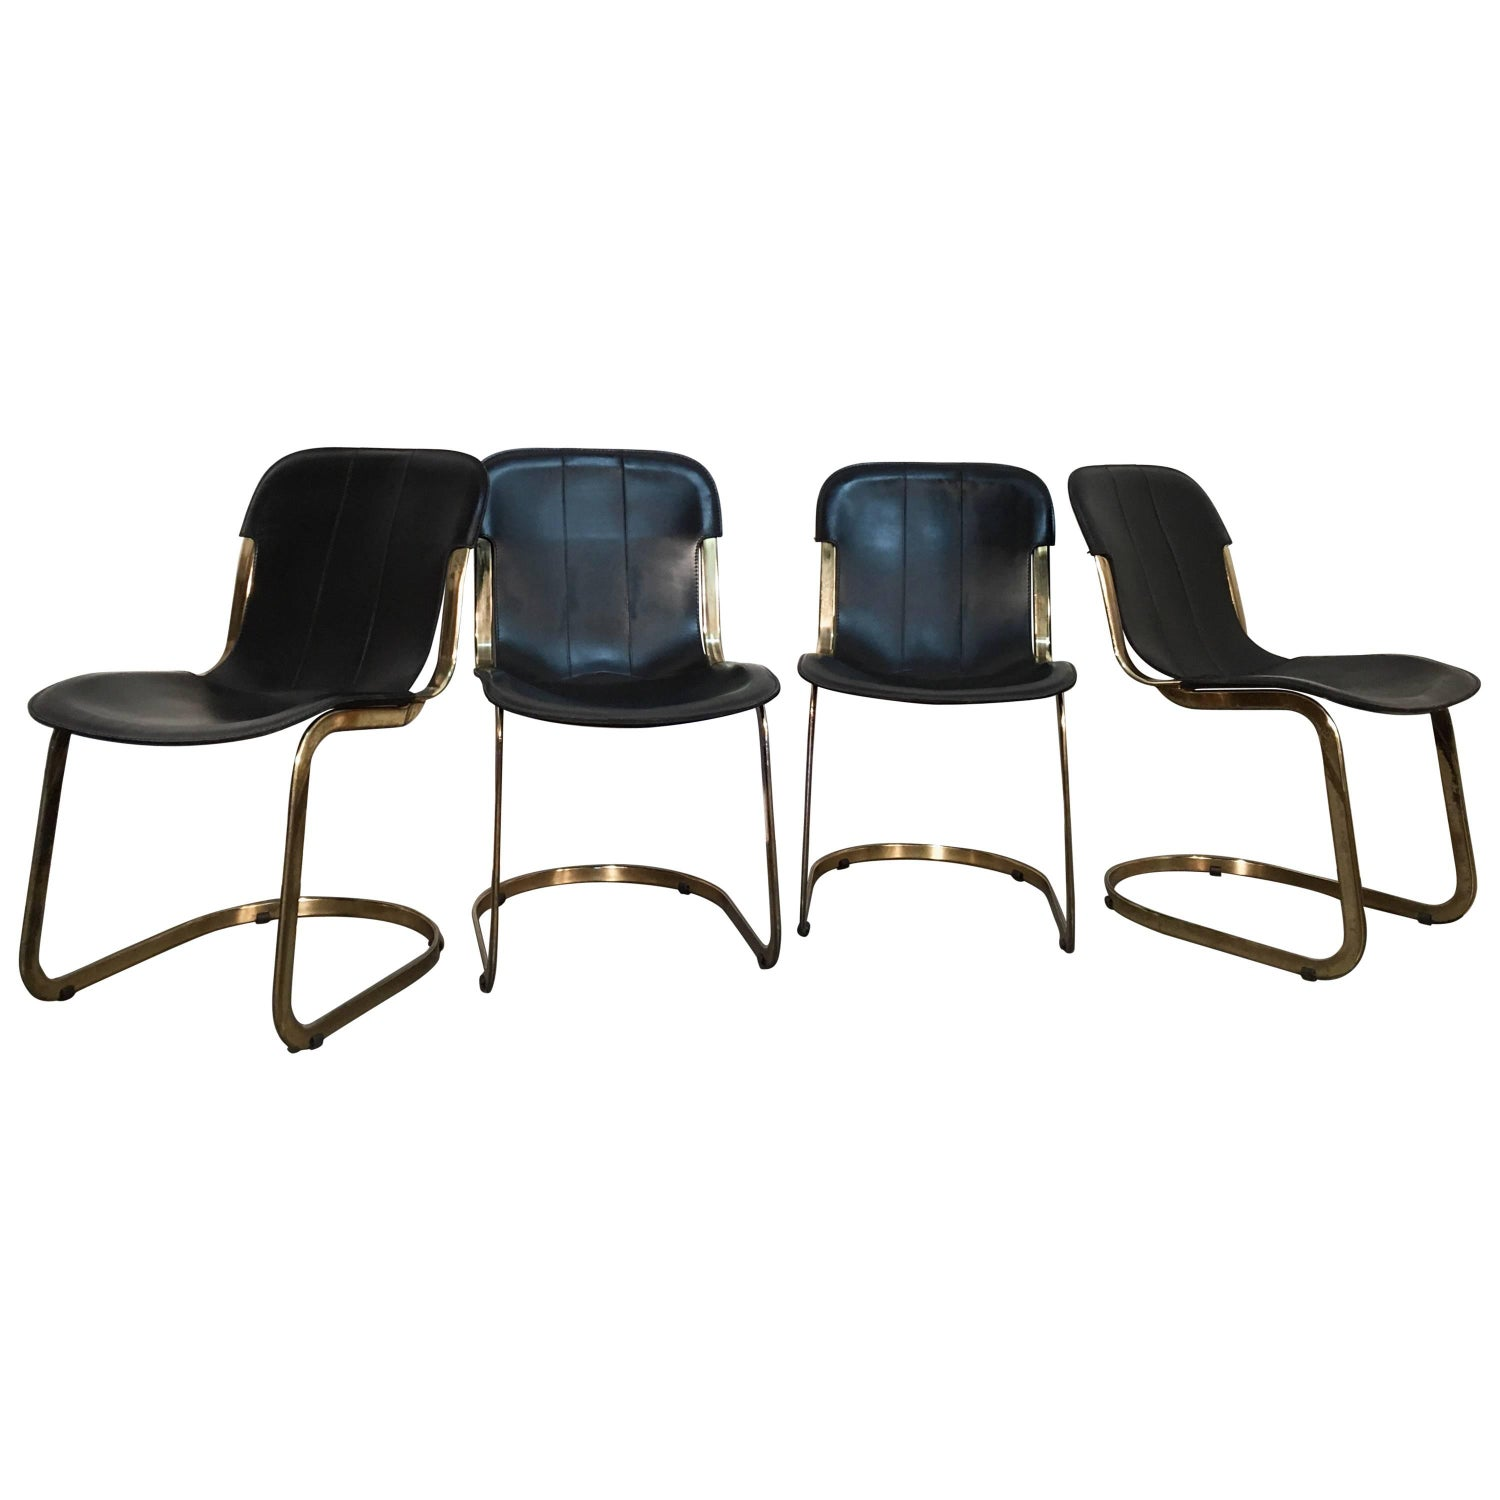 Set of Italian Leather High Back Dining Chairs by Cidue For Sale